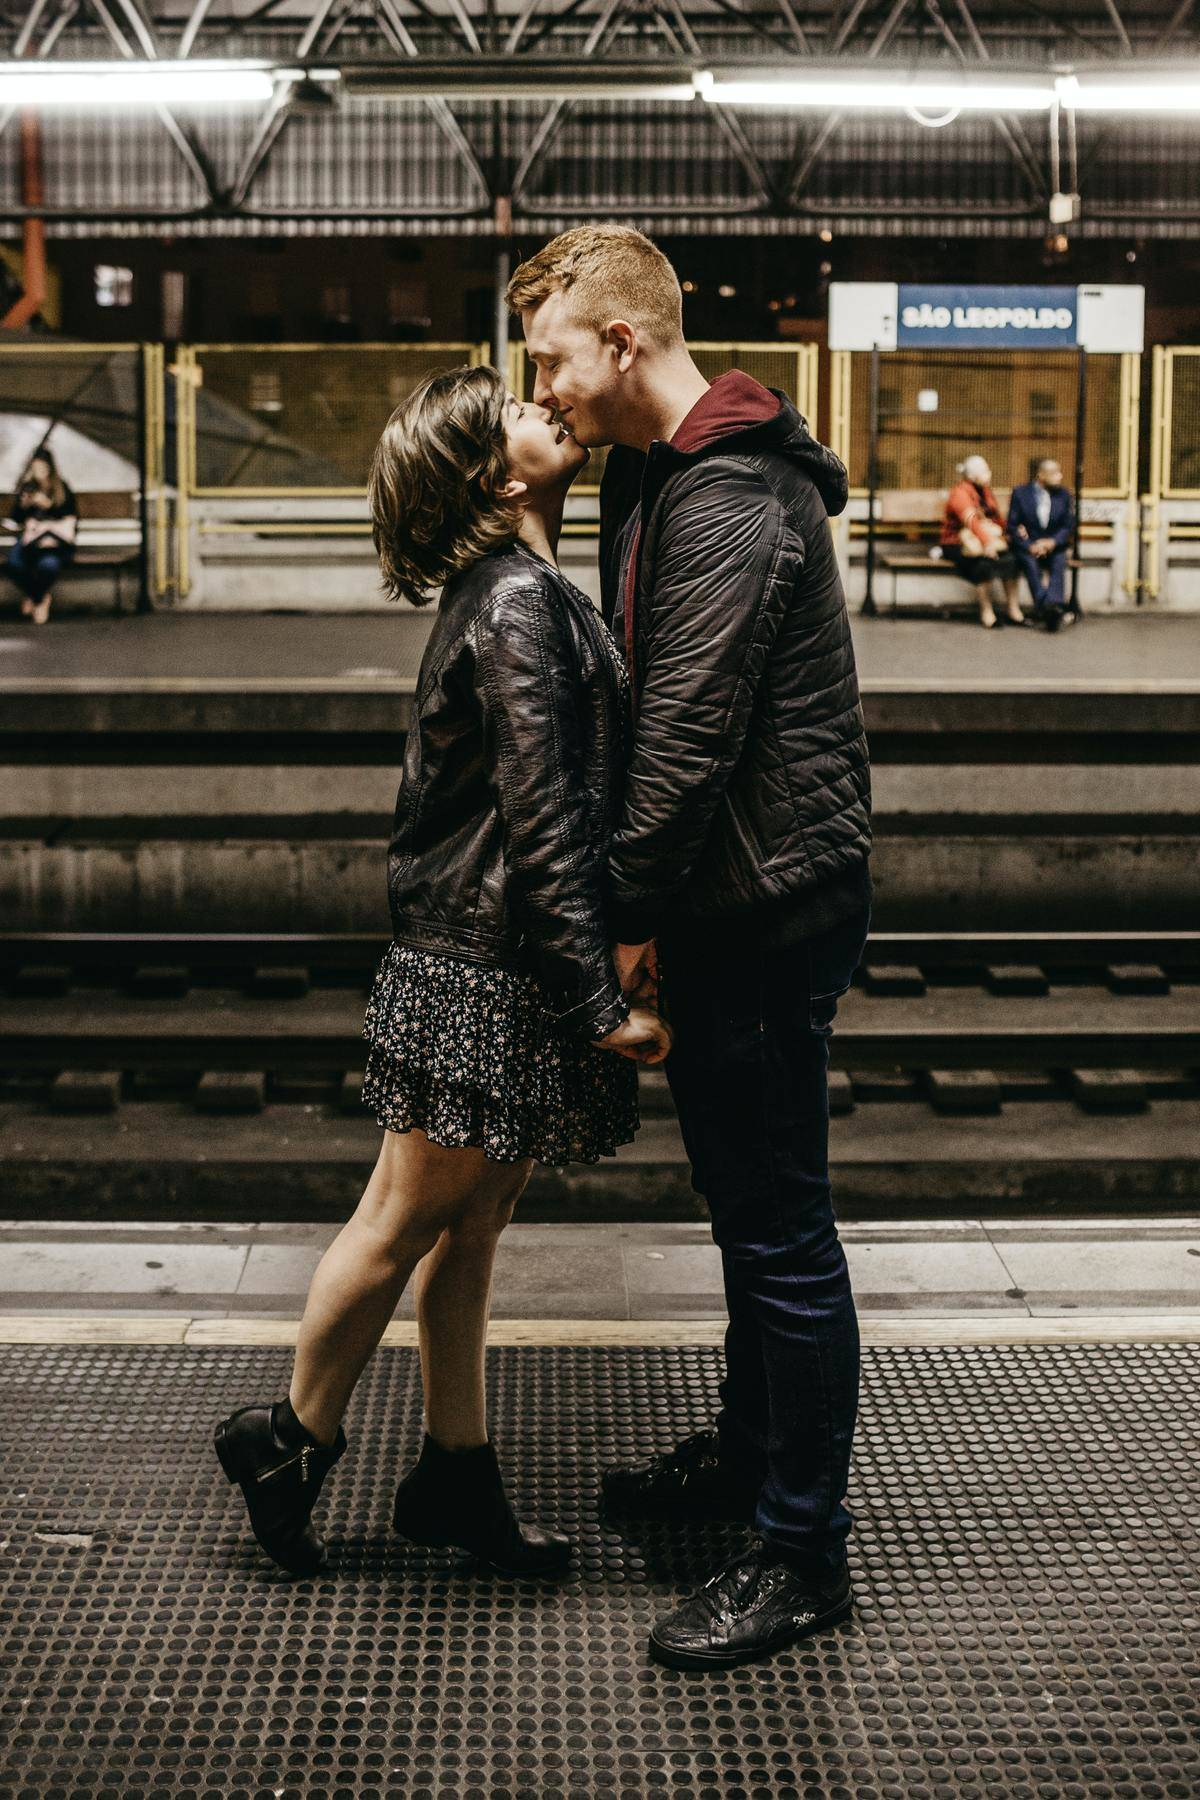 couple in a train station